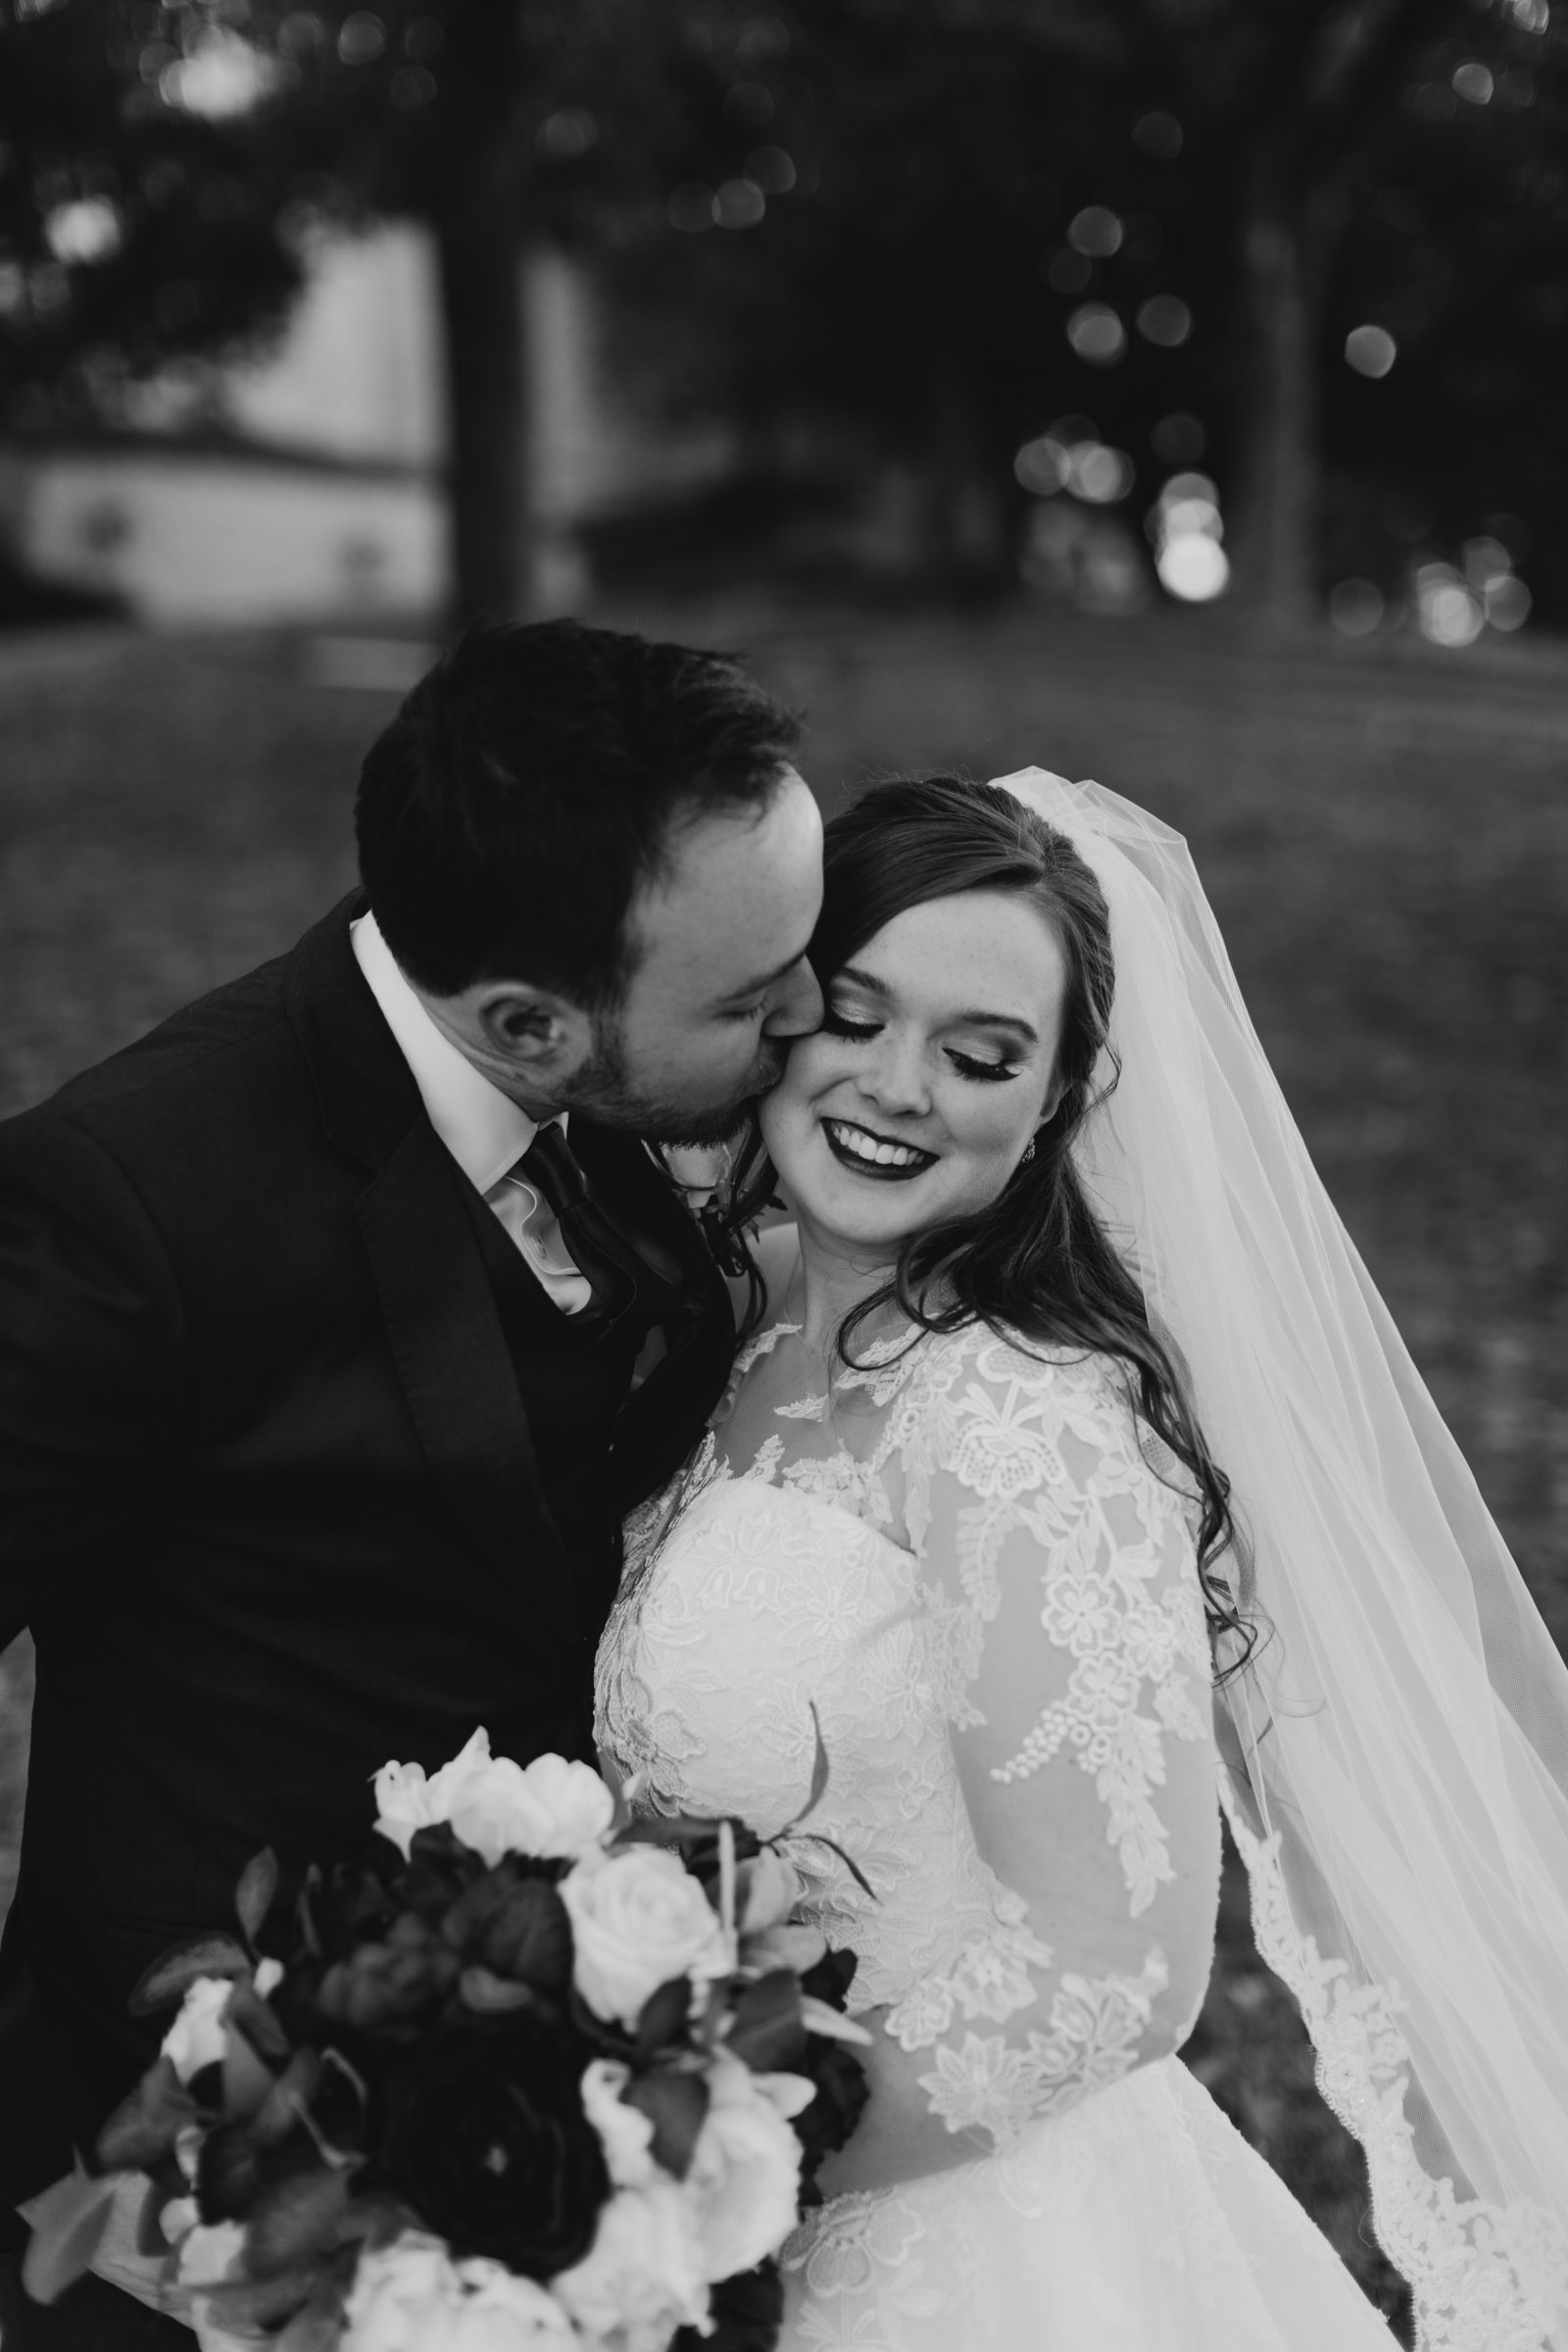 photographer takes photo of bride and groom after their traditional wedding day in DFW